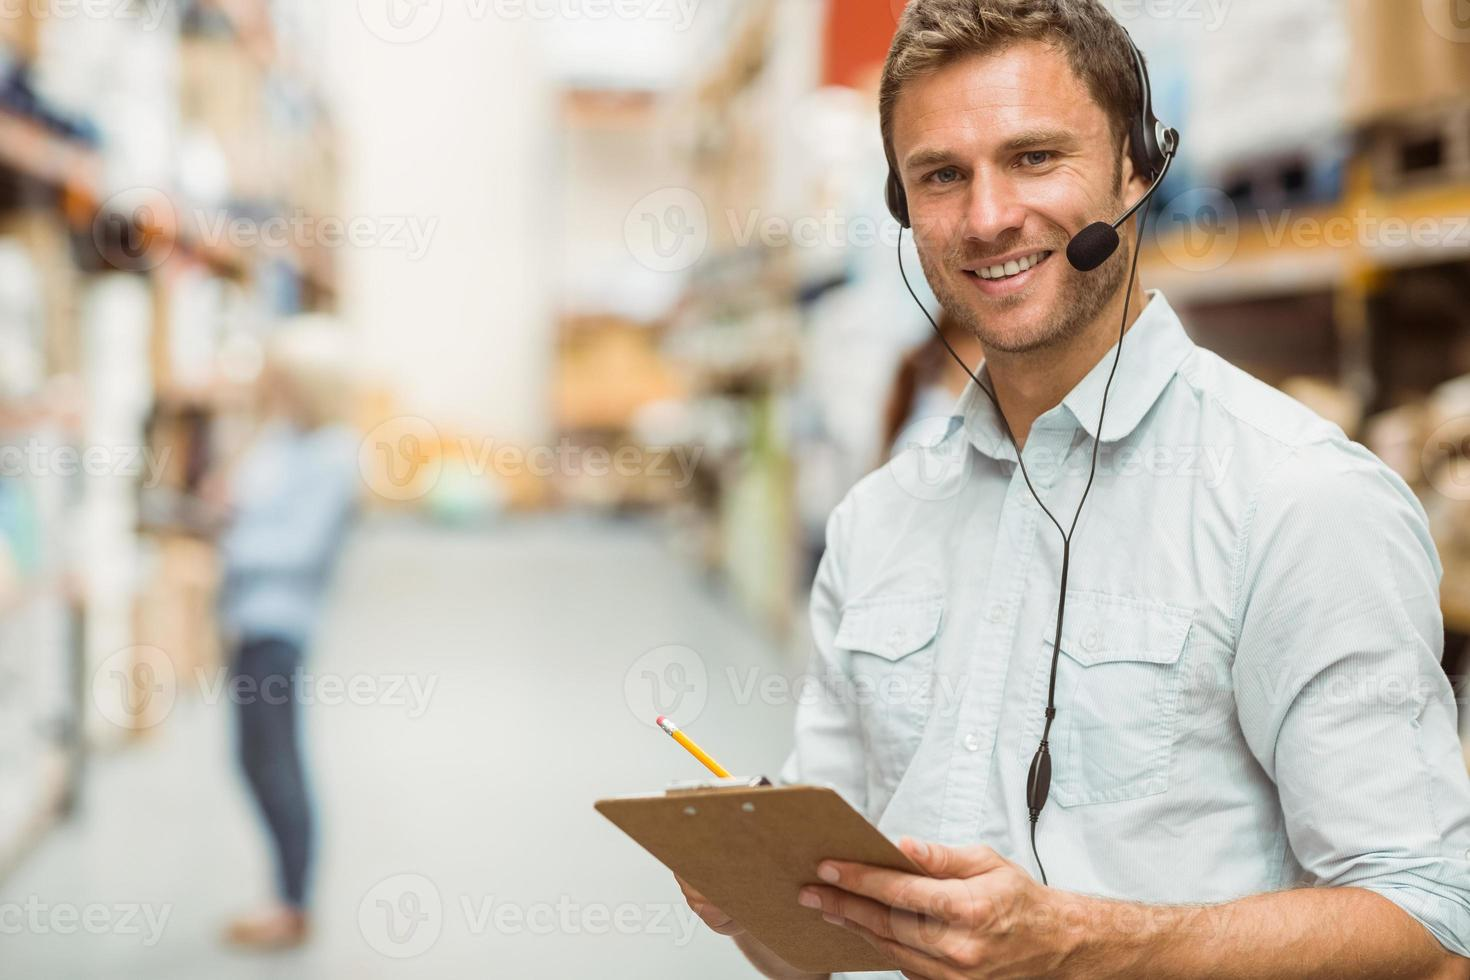 Warehouse manager wearing headset writing on clipboard photo